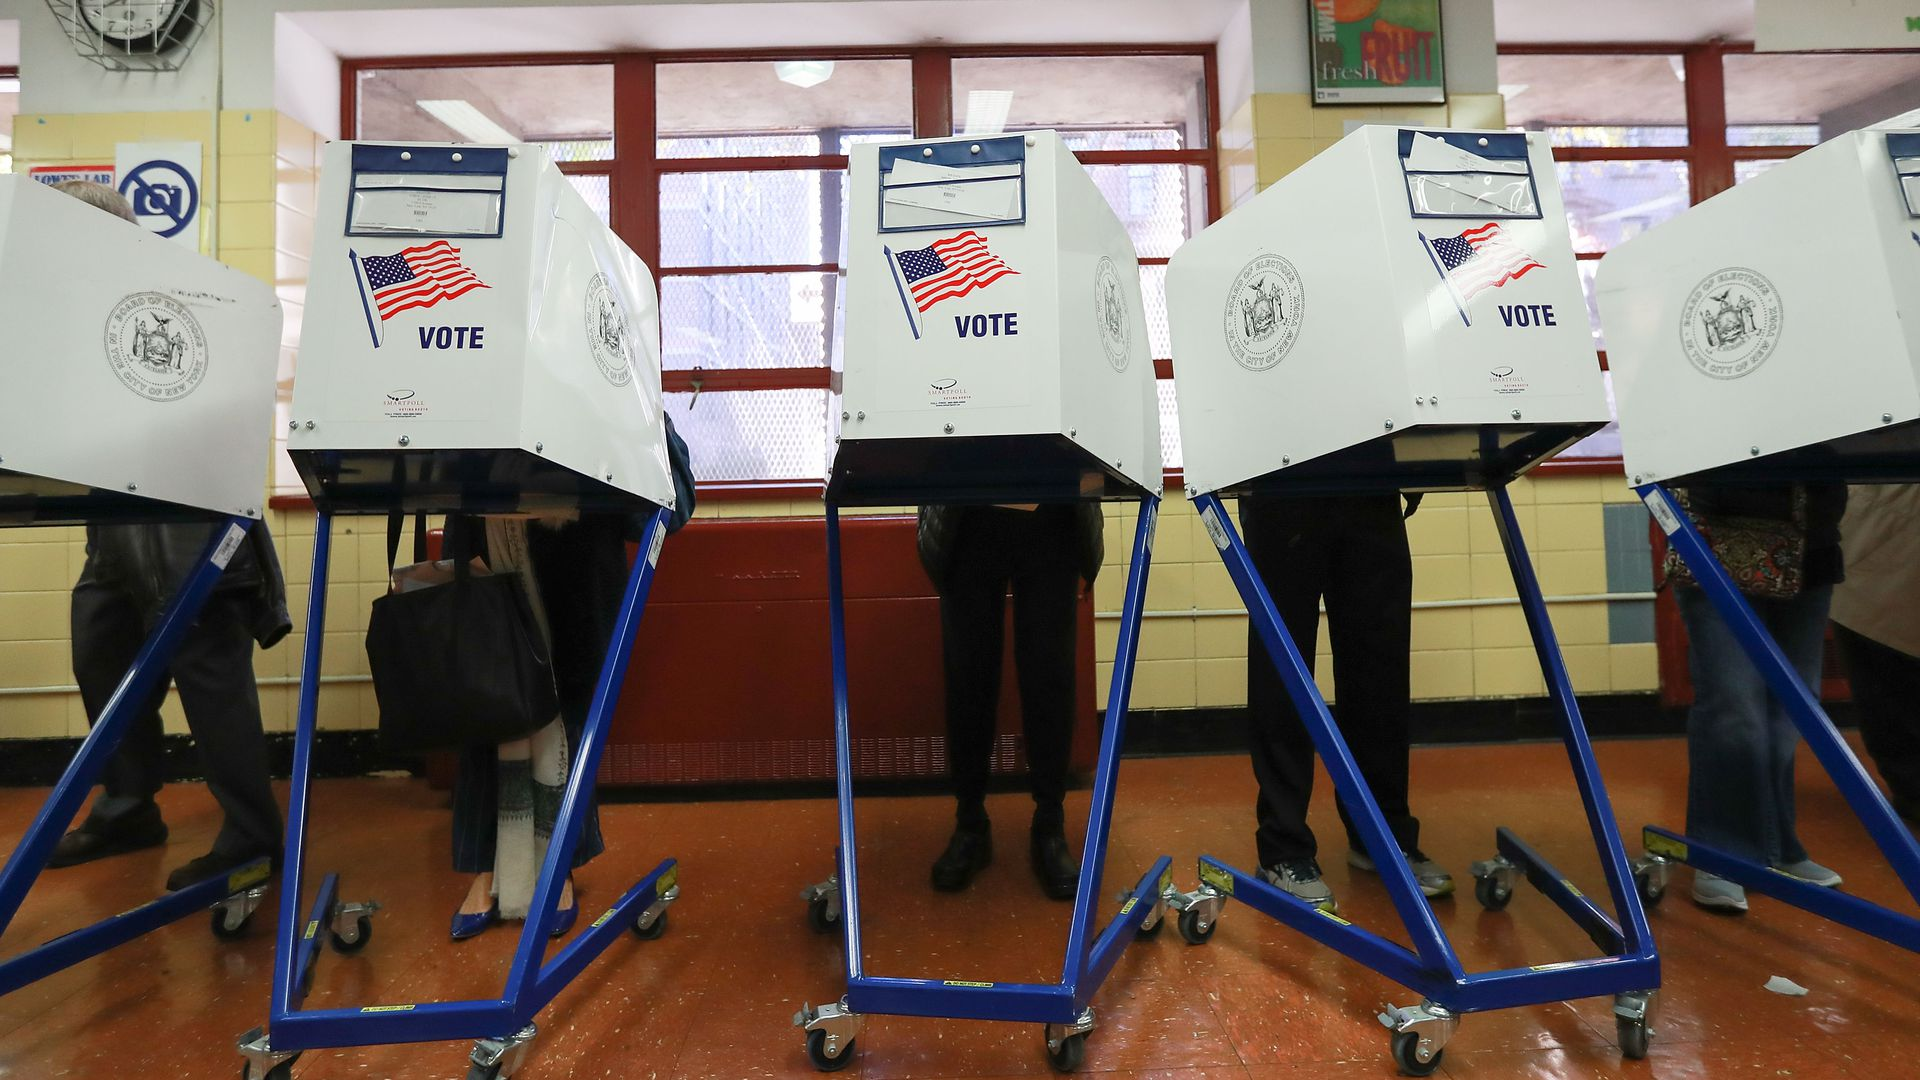 Voters cast their ballots. Photo: Michael Reaves/Getty Images